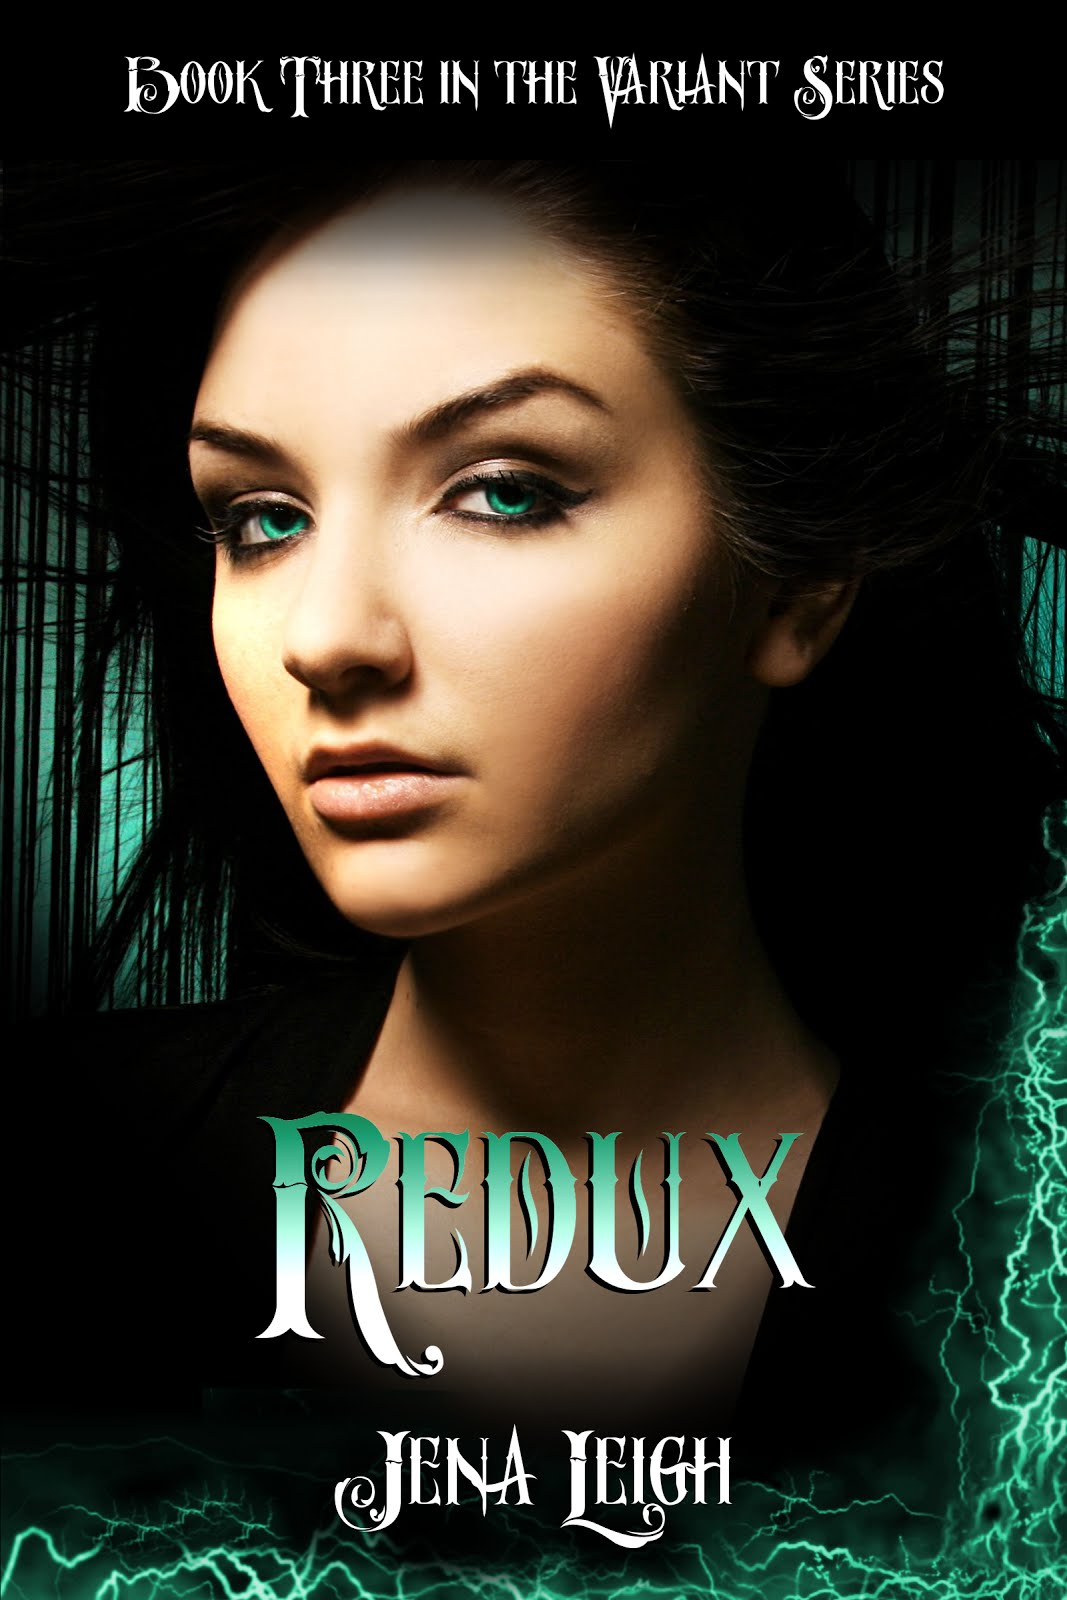 Find Redux on Amazon